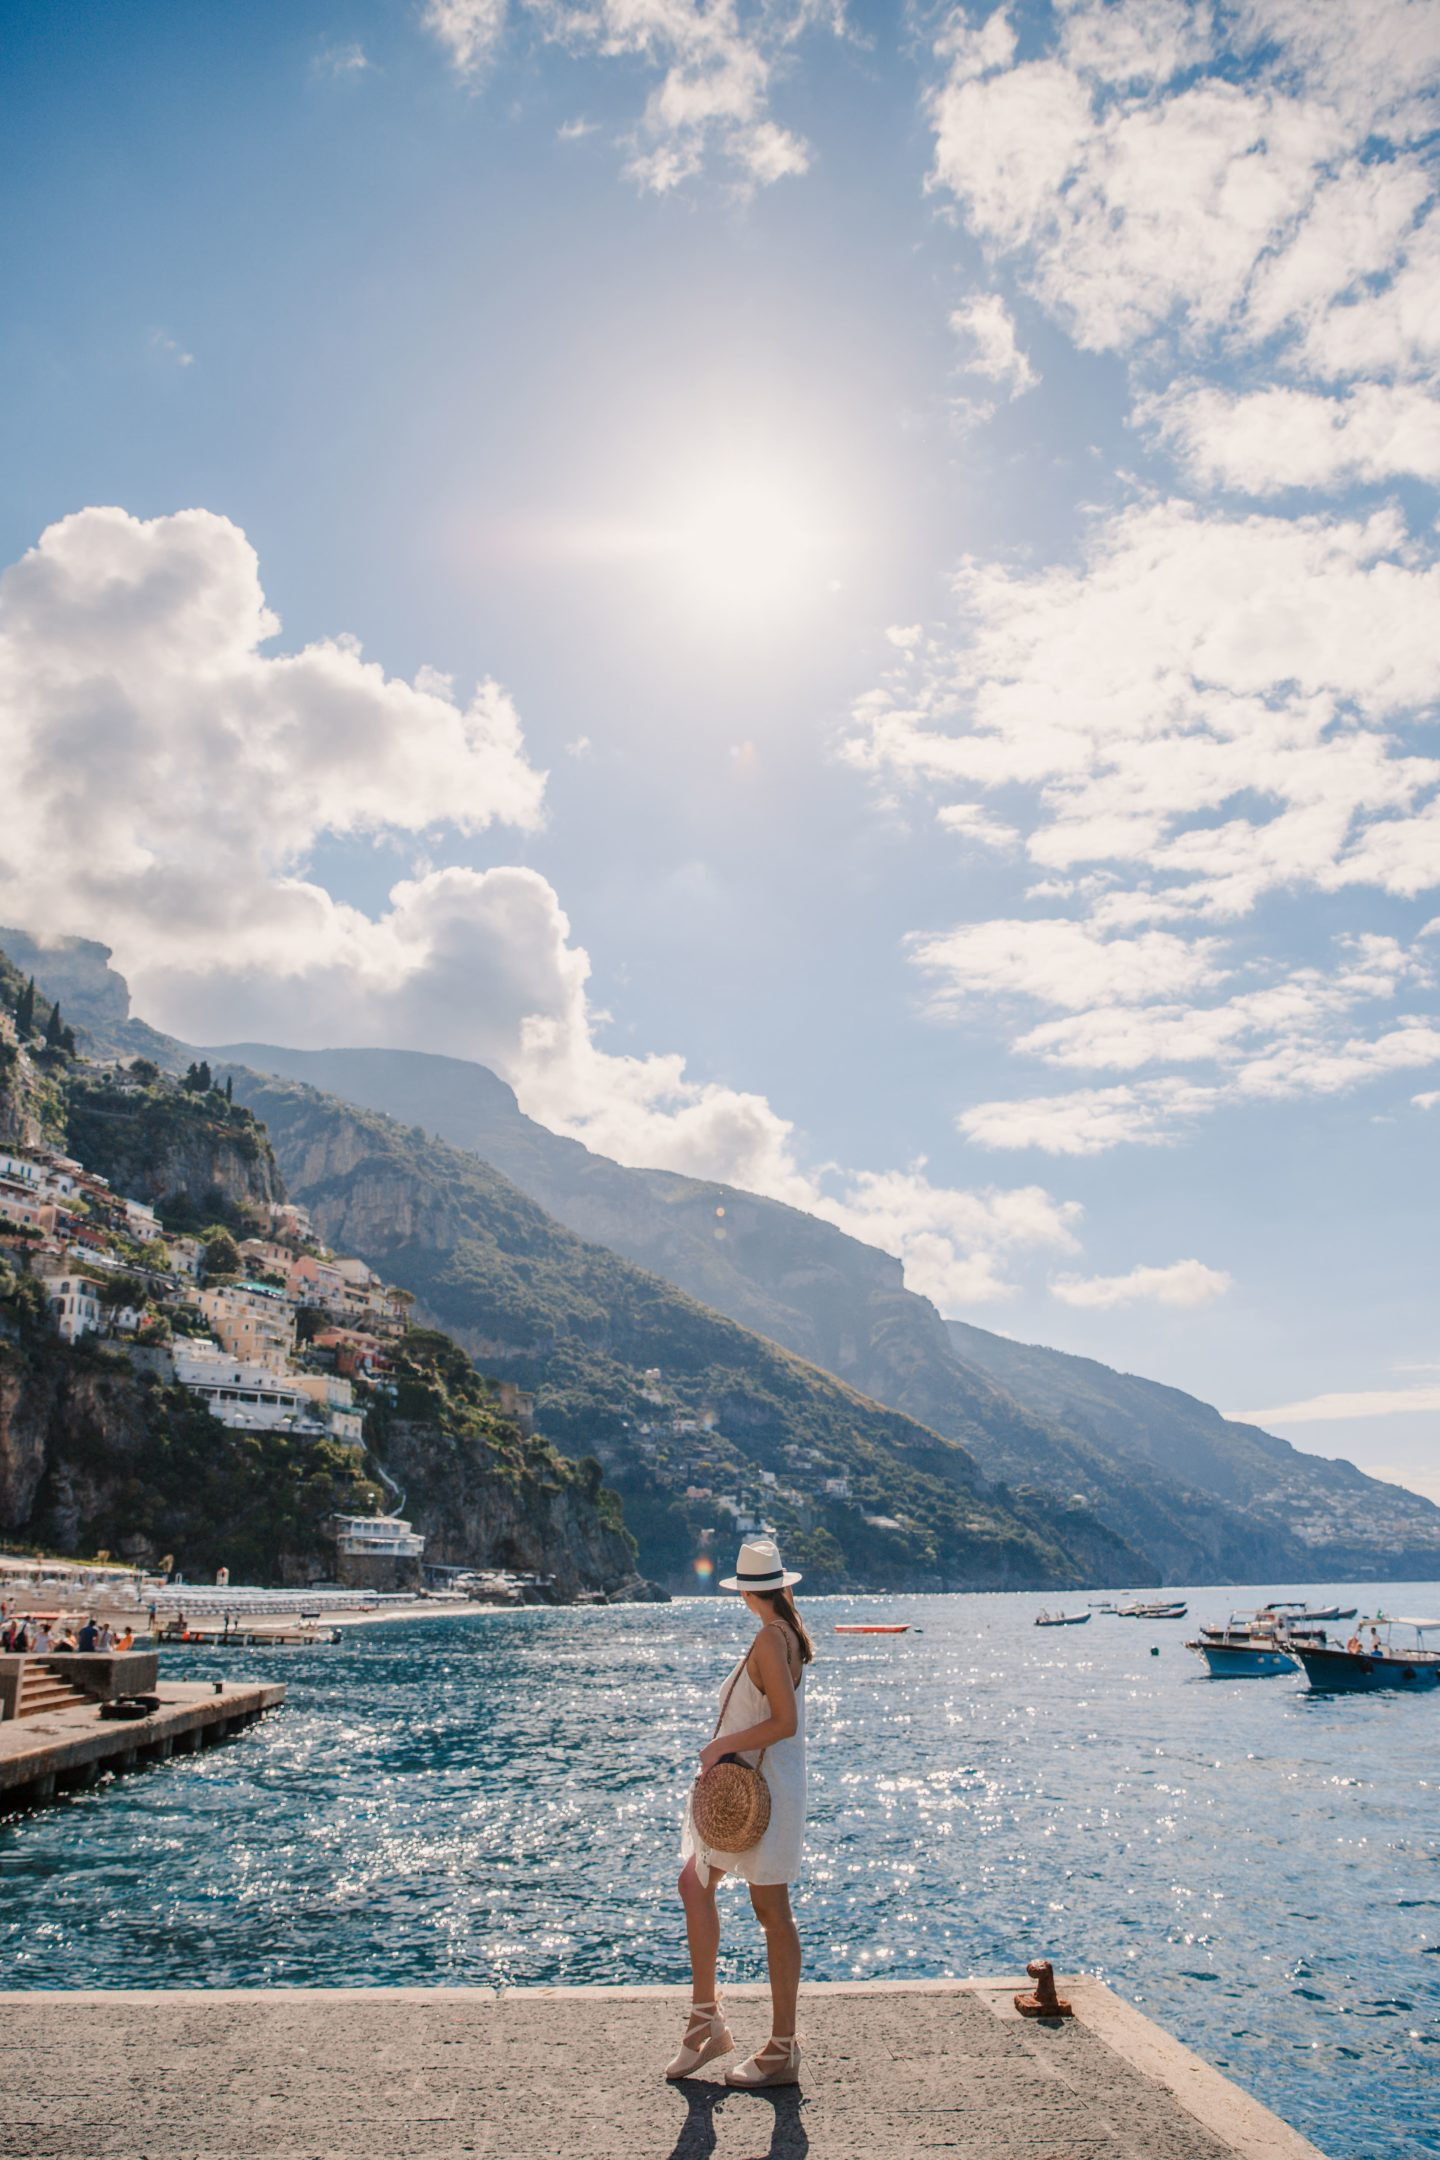 The Best Positano Instagram Shots | 12 Beautiful Shots You Can't Miss: The Marina